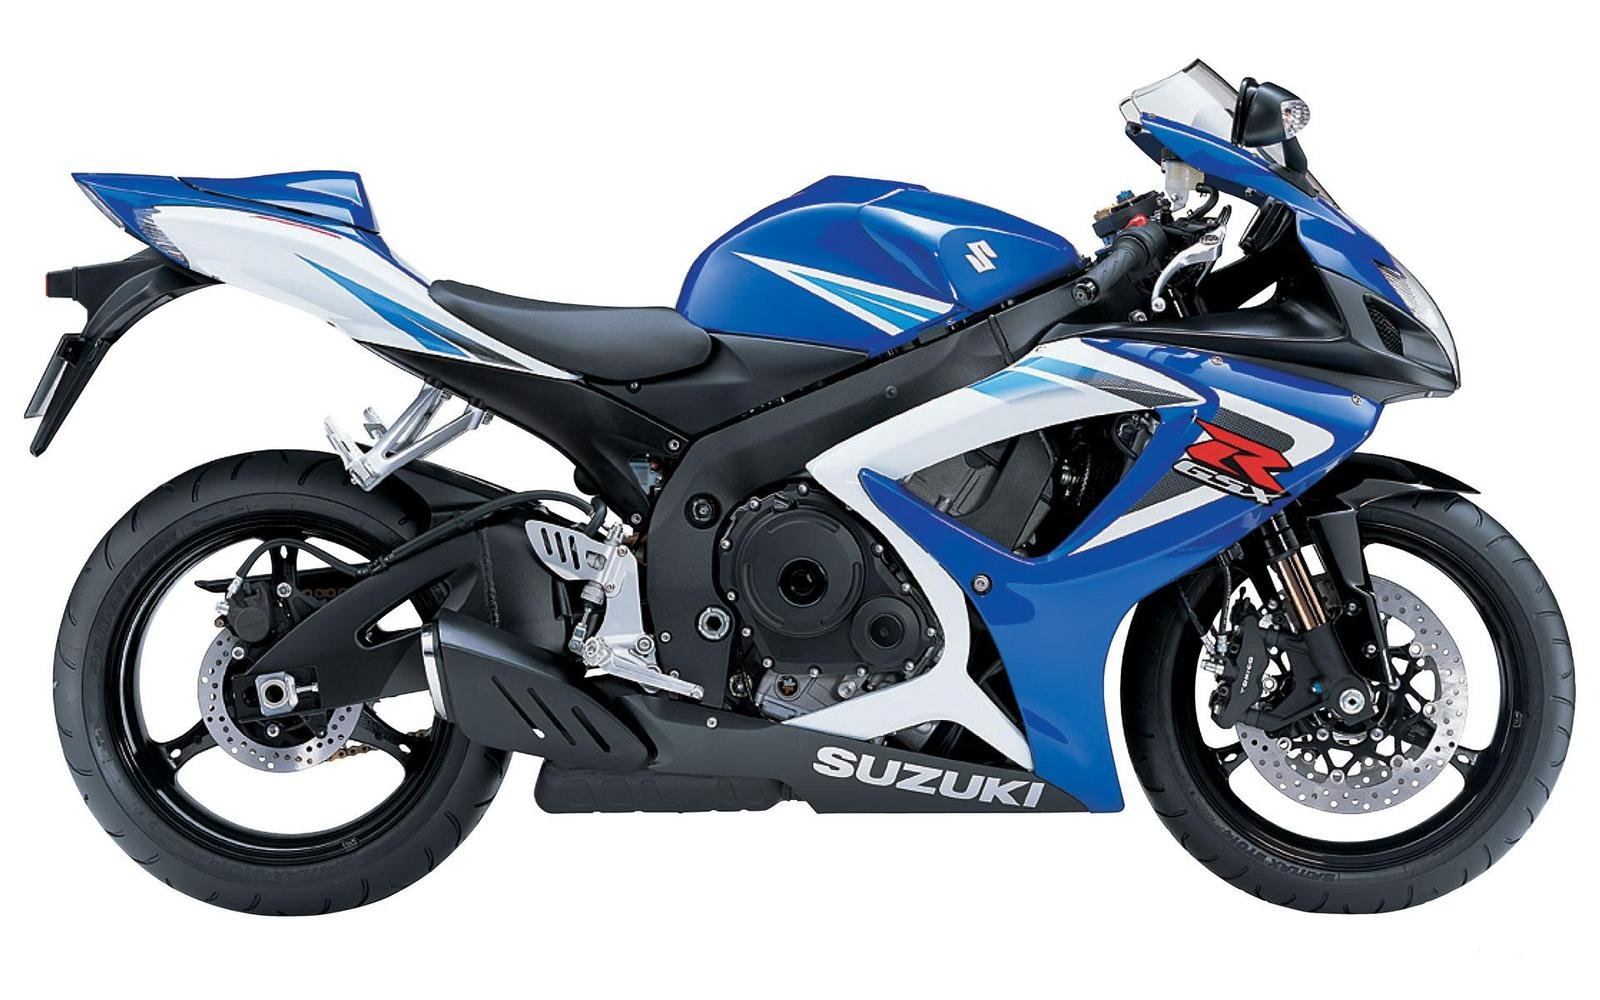 Suzuki GSXR 750 - Picture 84622 | motorcycle review @ Top ...